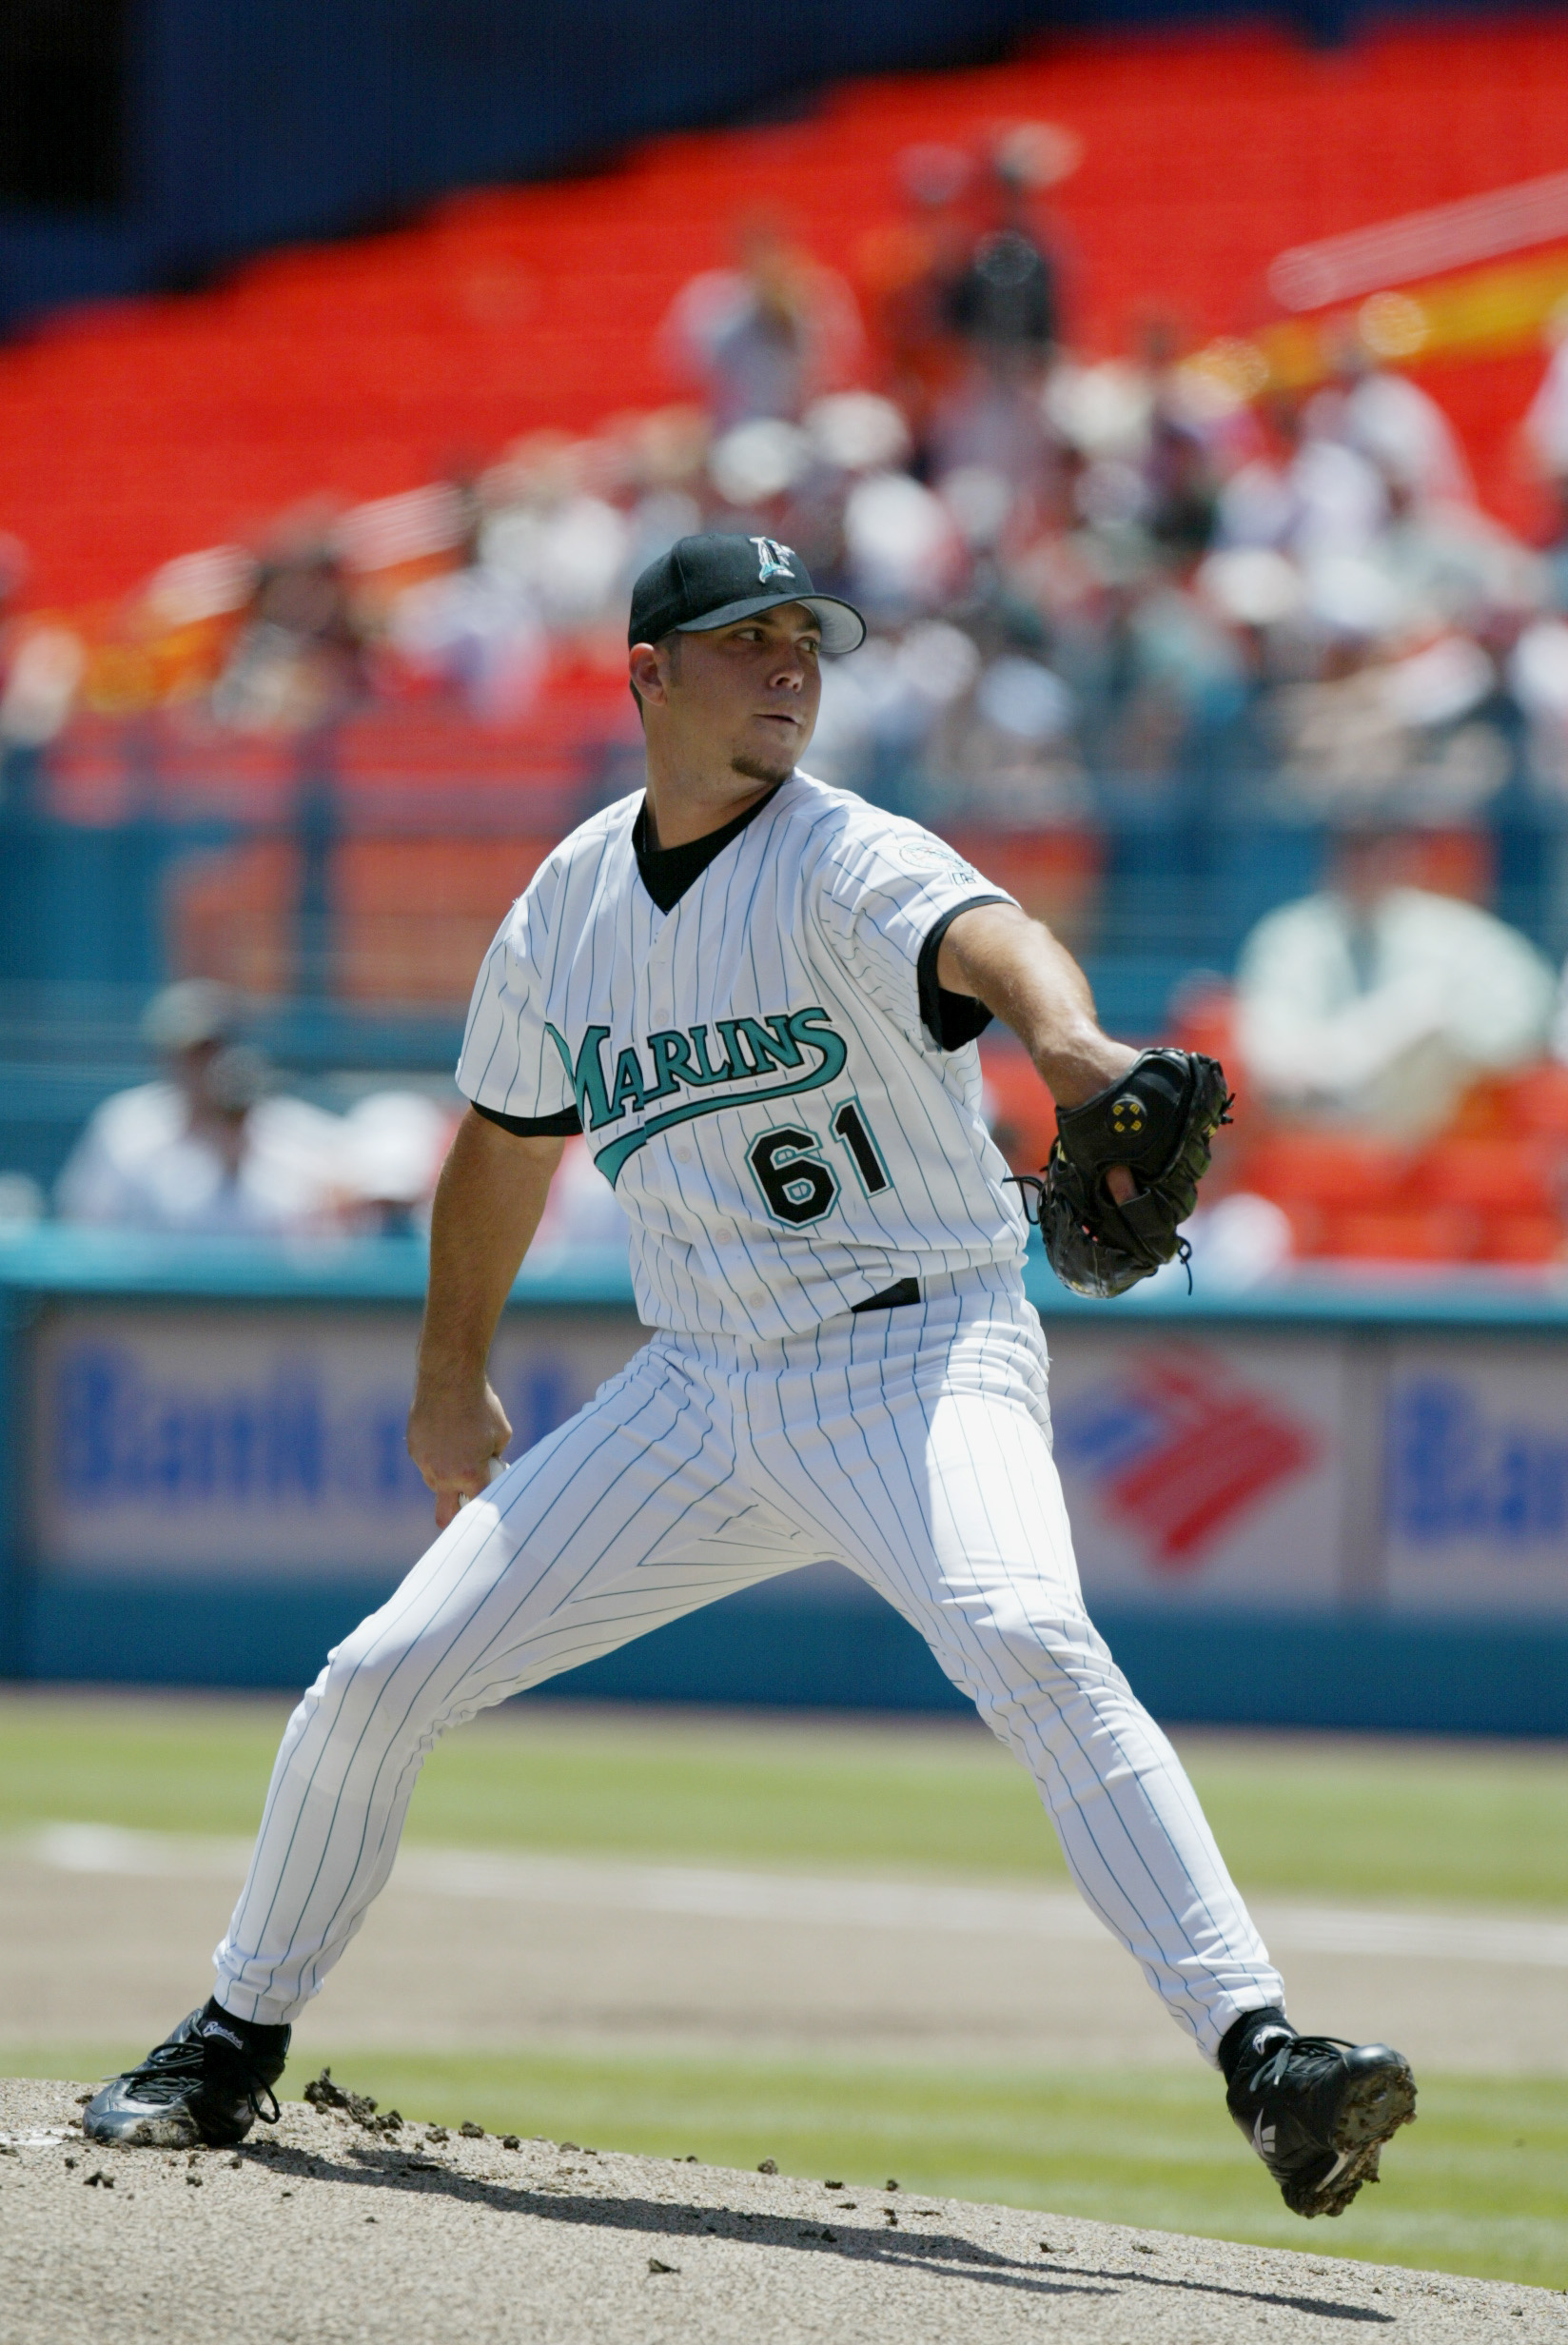 Josh Beckett was the second overall pick by the Florida Marlins in the 1999 draft.